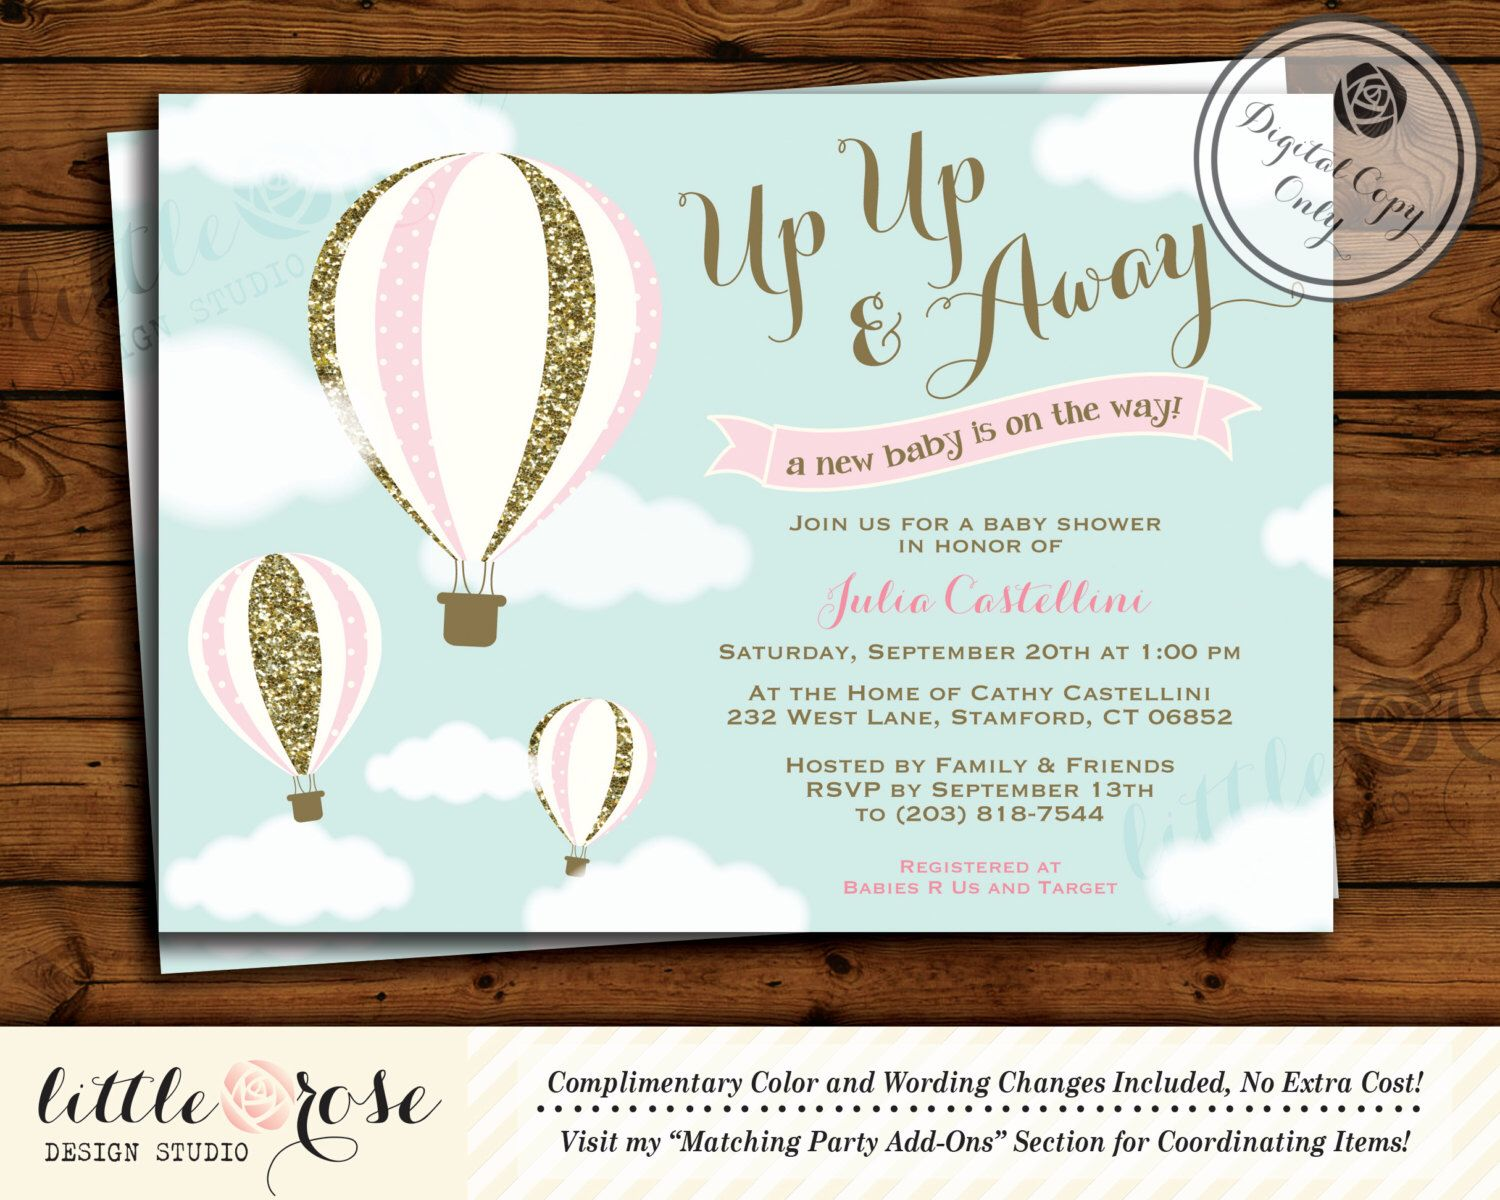 Hot Air Balloon Baby Shower Invitation - Up Up & Away Baby Shower ...